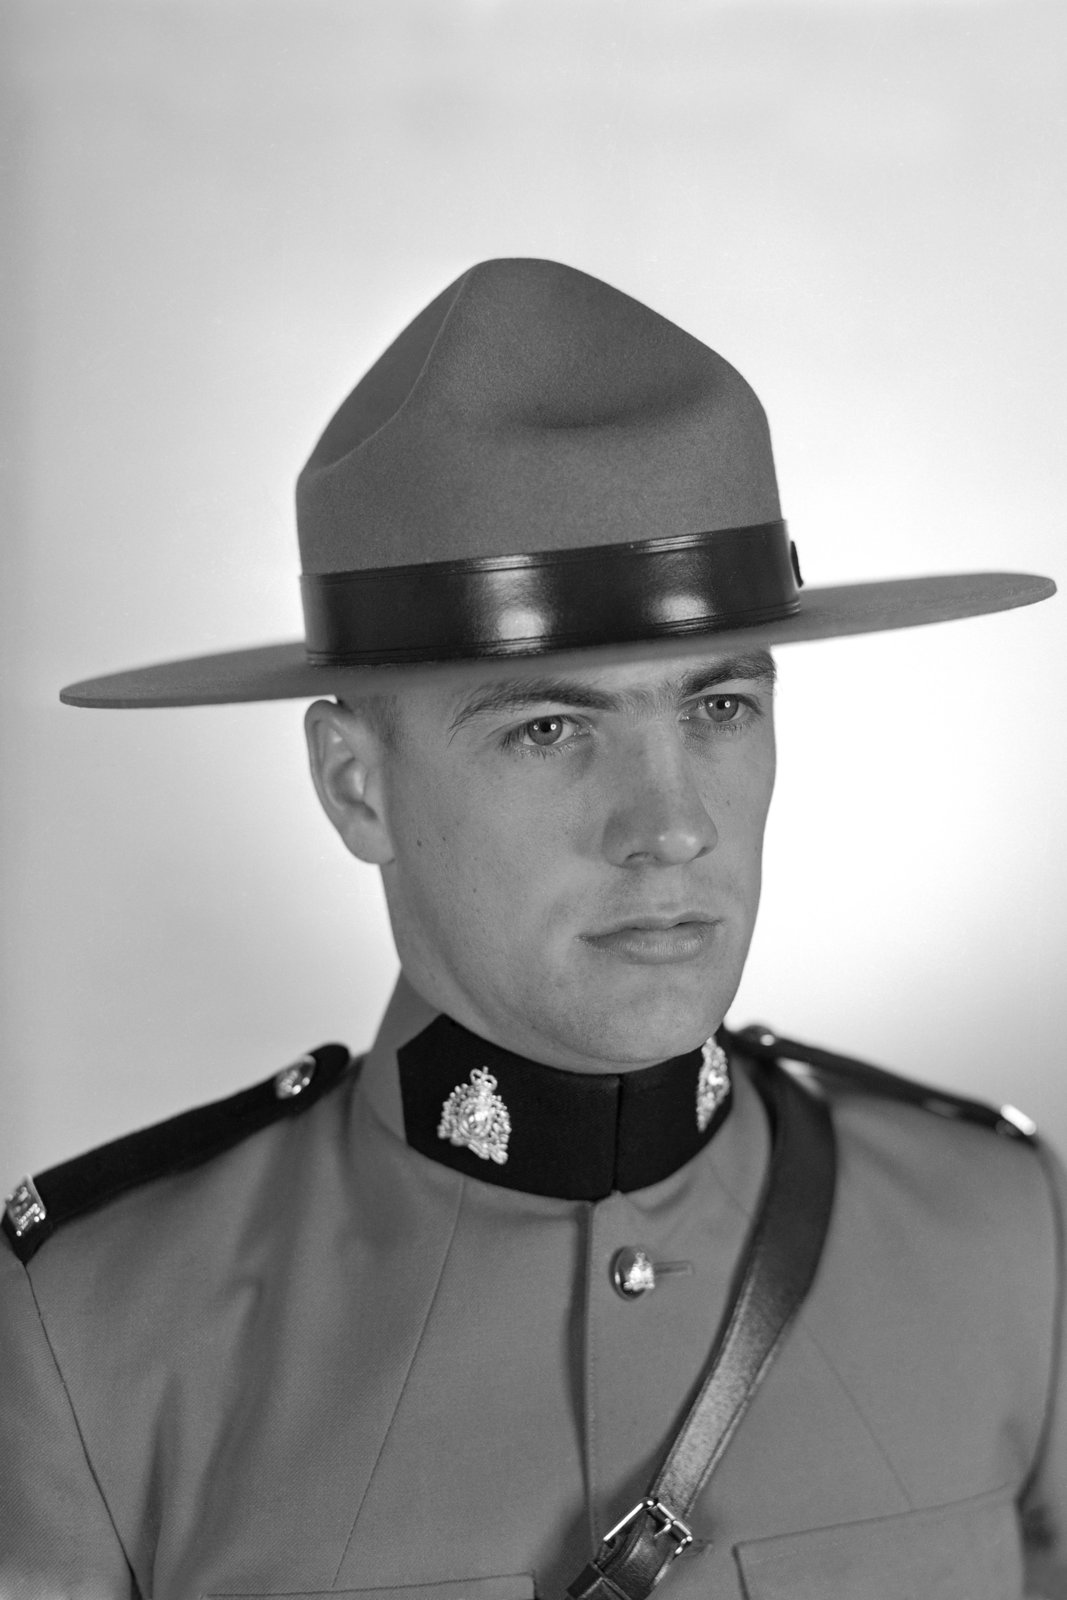 Constable Robert Charles Anderson– © Her Majesty the Queen in Right of Canada as represented by the Royal Canadian Mounted Police